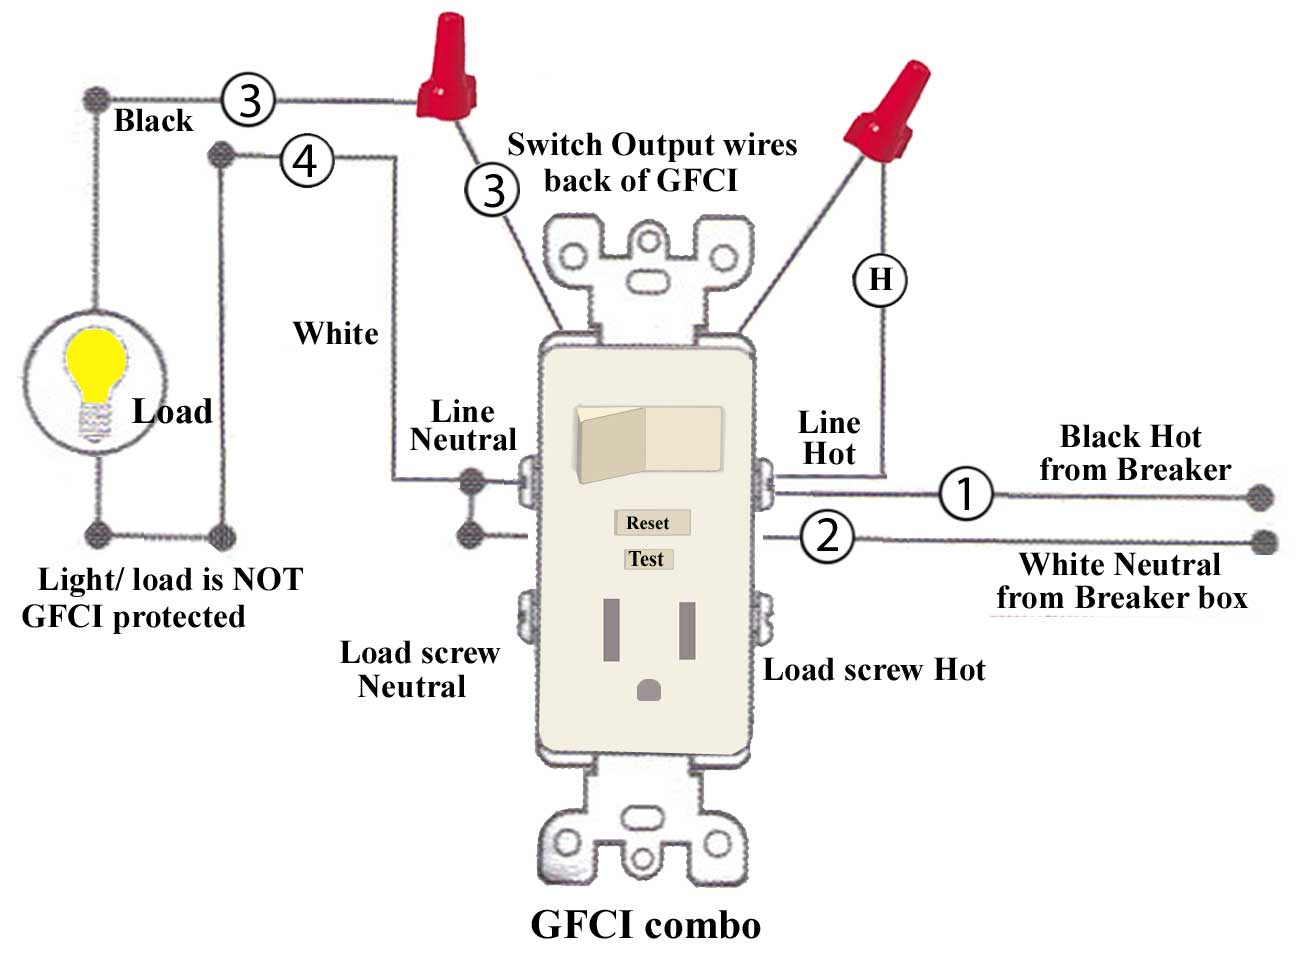 hight resolution of double throw relay also wiring of a 2 pole gfci circuit breaker on rh 5 ccainternational de single pull double throw circuit double 20 amp breaker